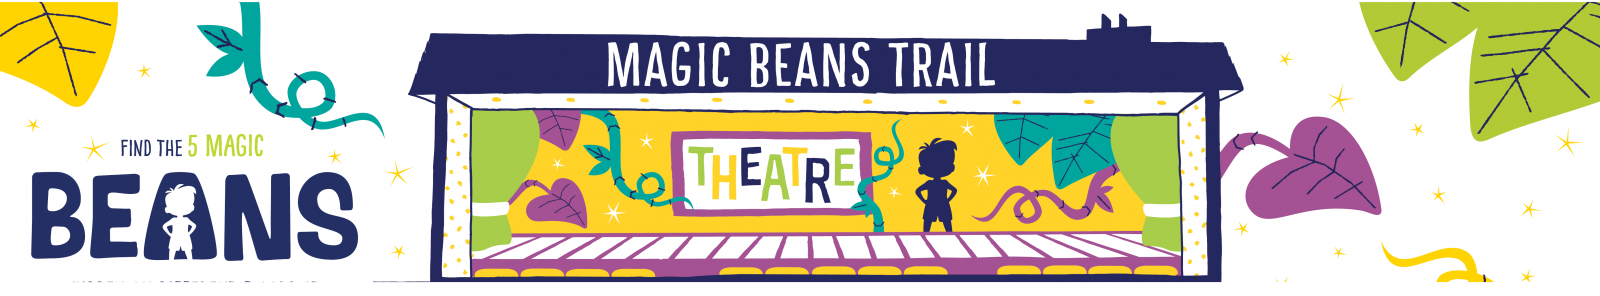 Magic Beans Trail Header